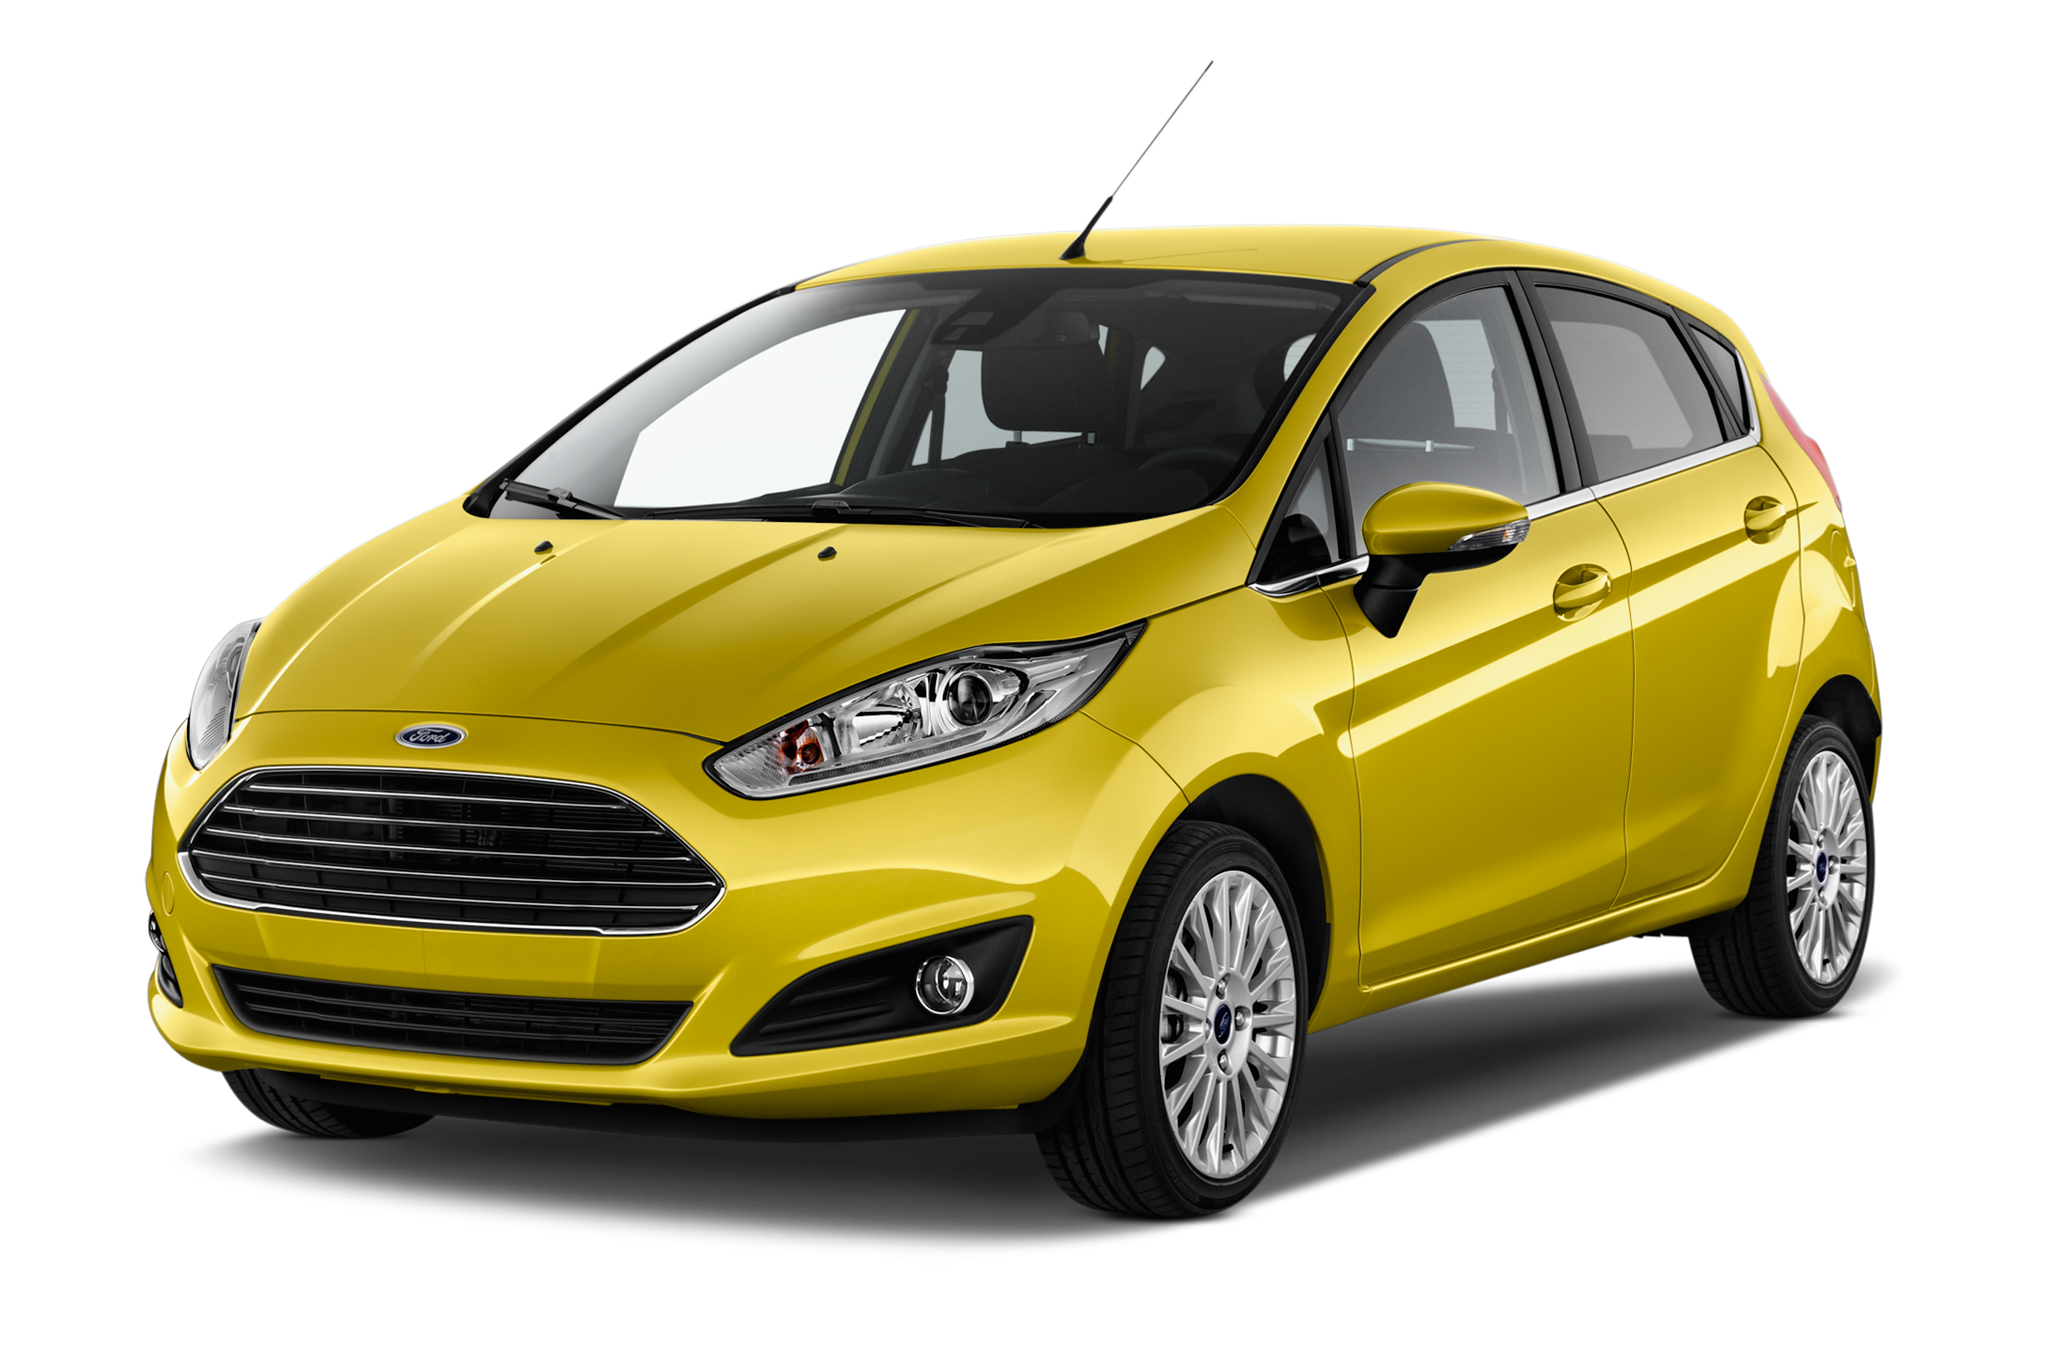 2019 Ford Fiesta ST Concept photo - 5